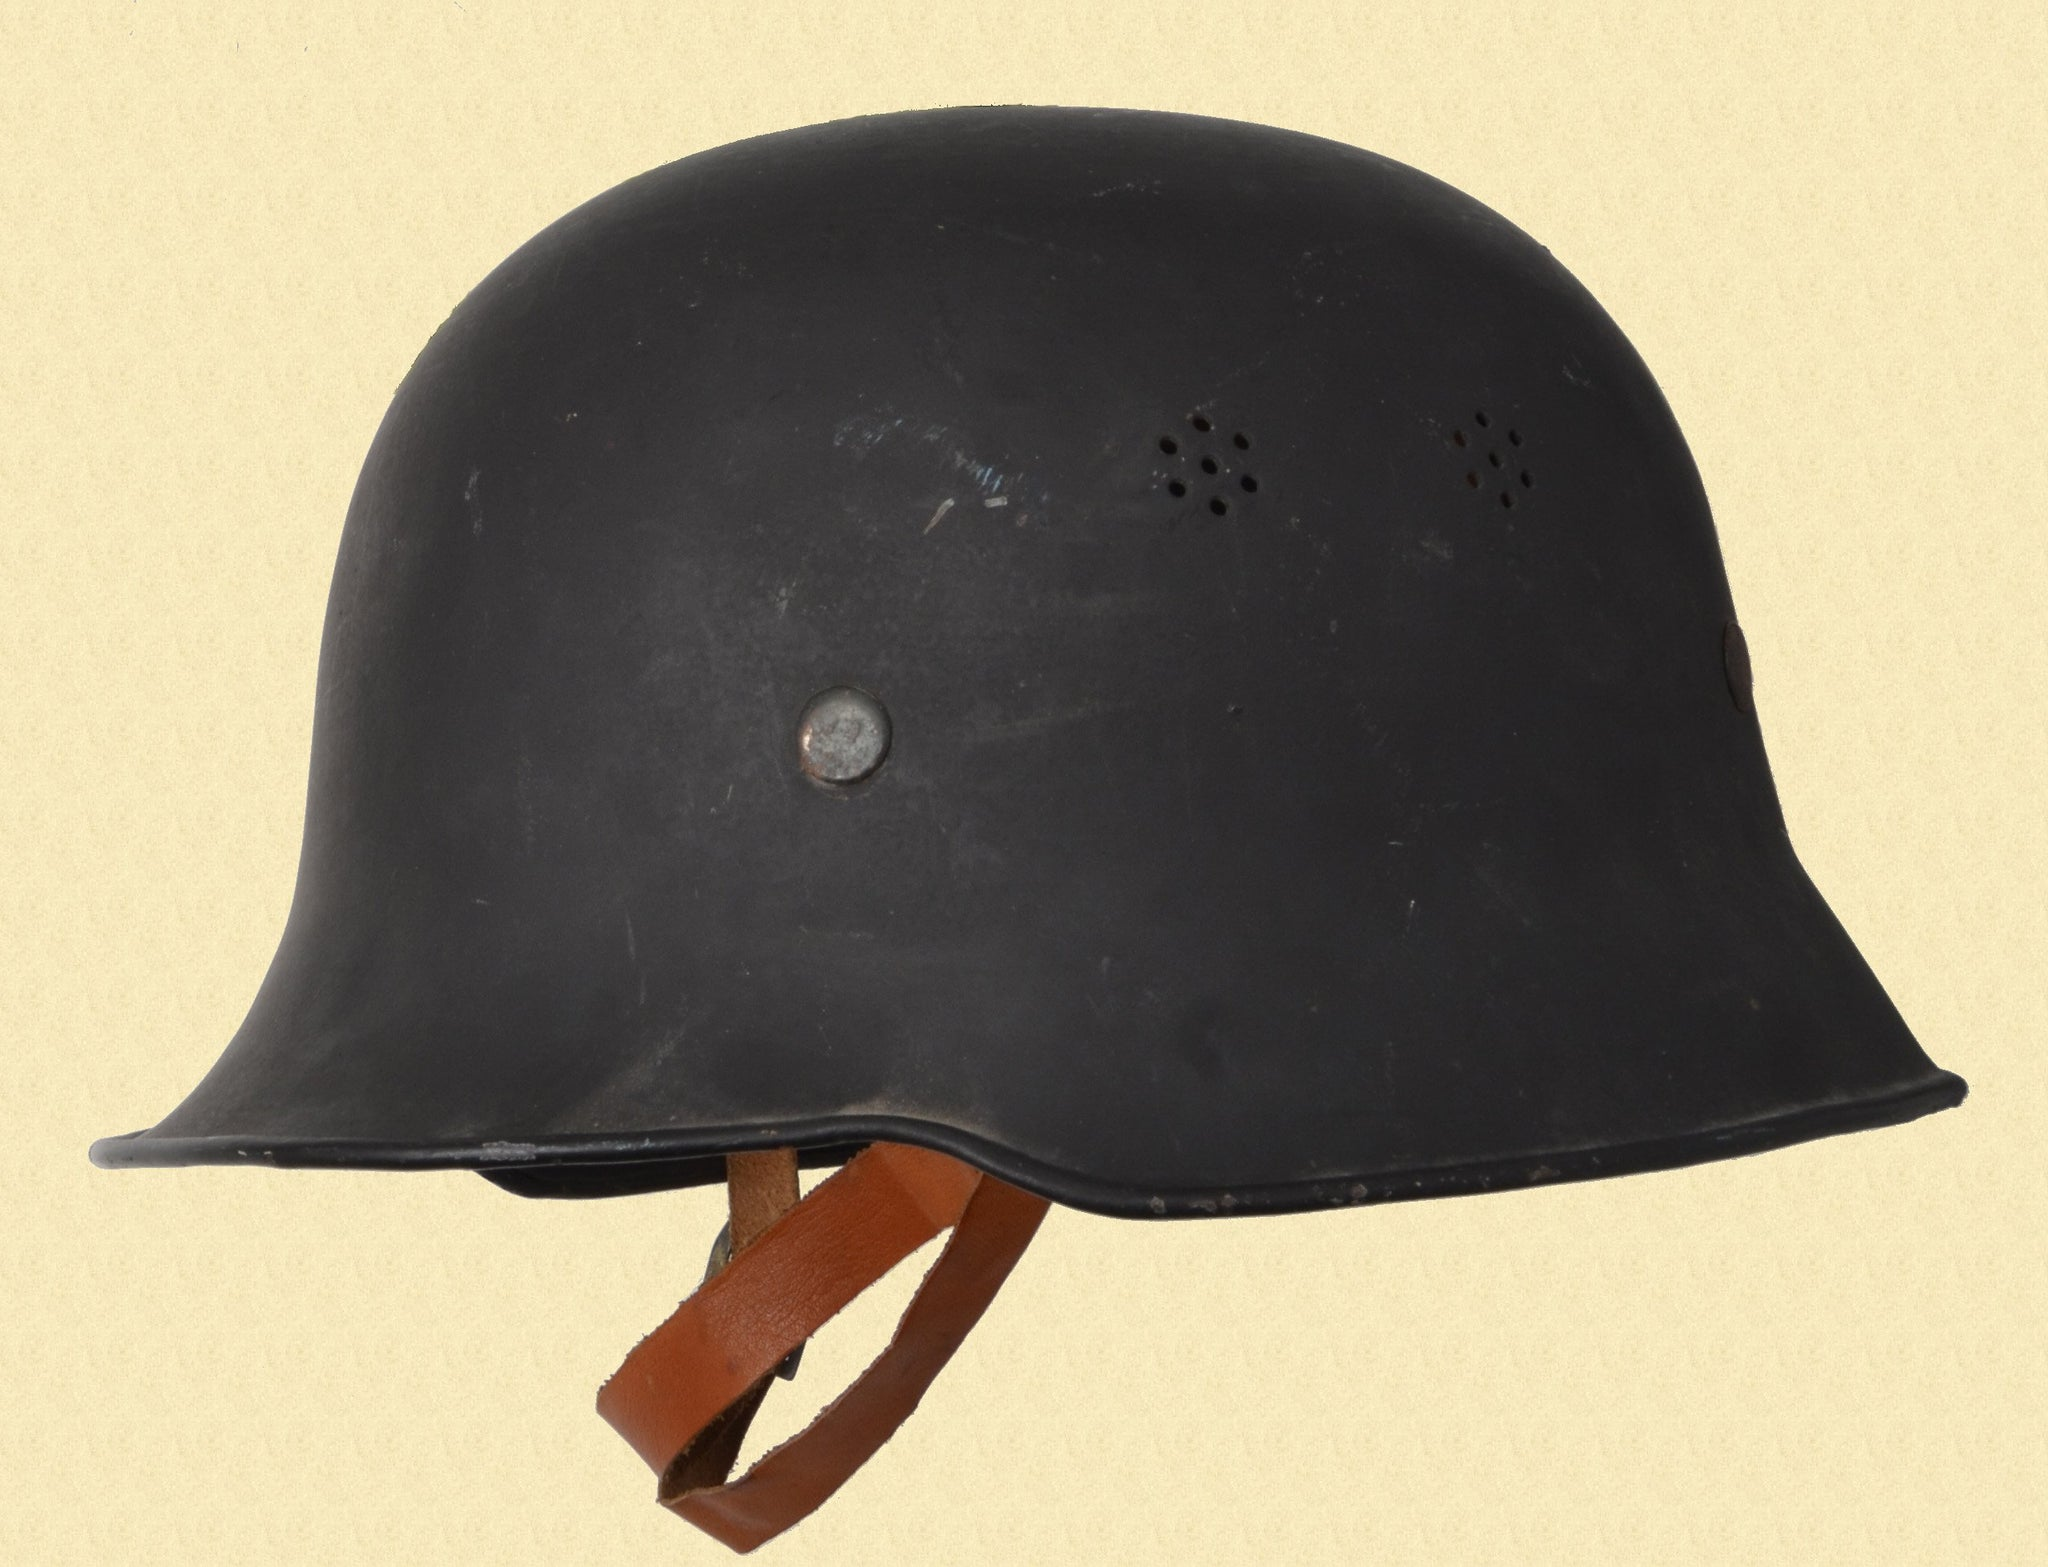 GERMAN M34 CIVIC (NO DECALS) HELMET